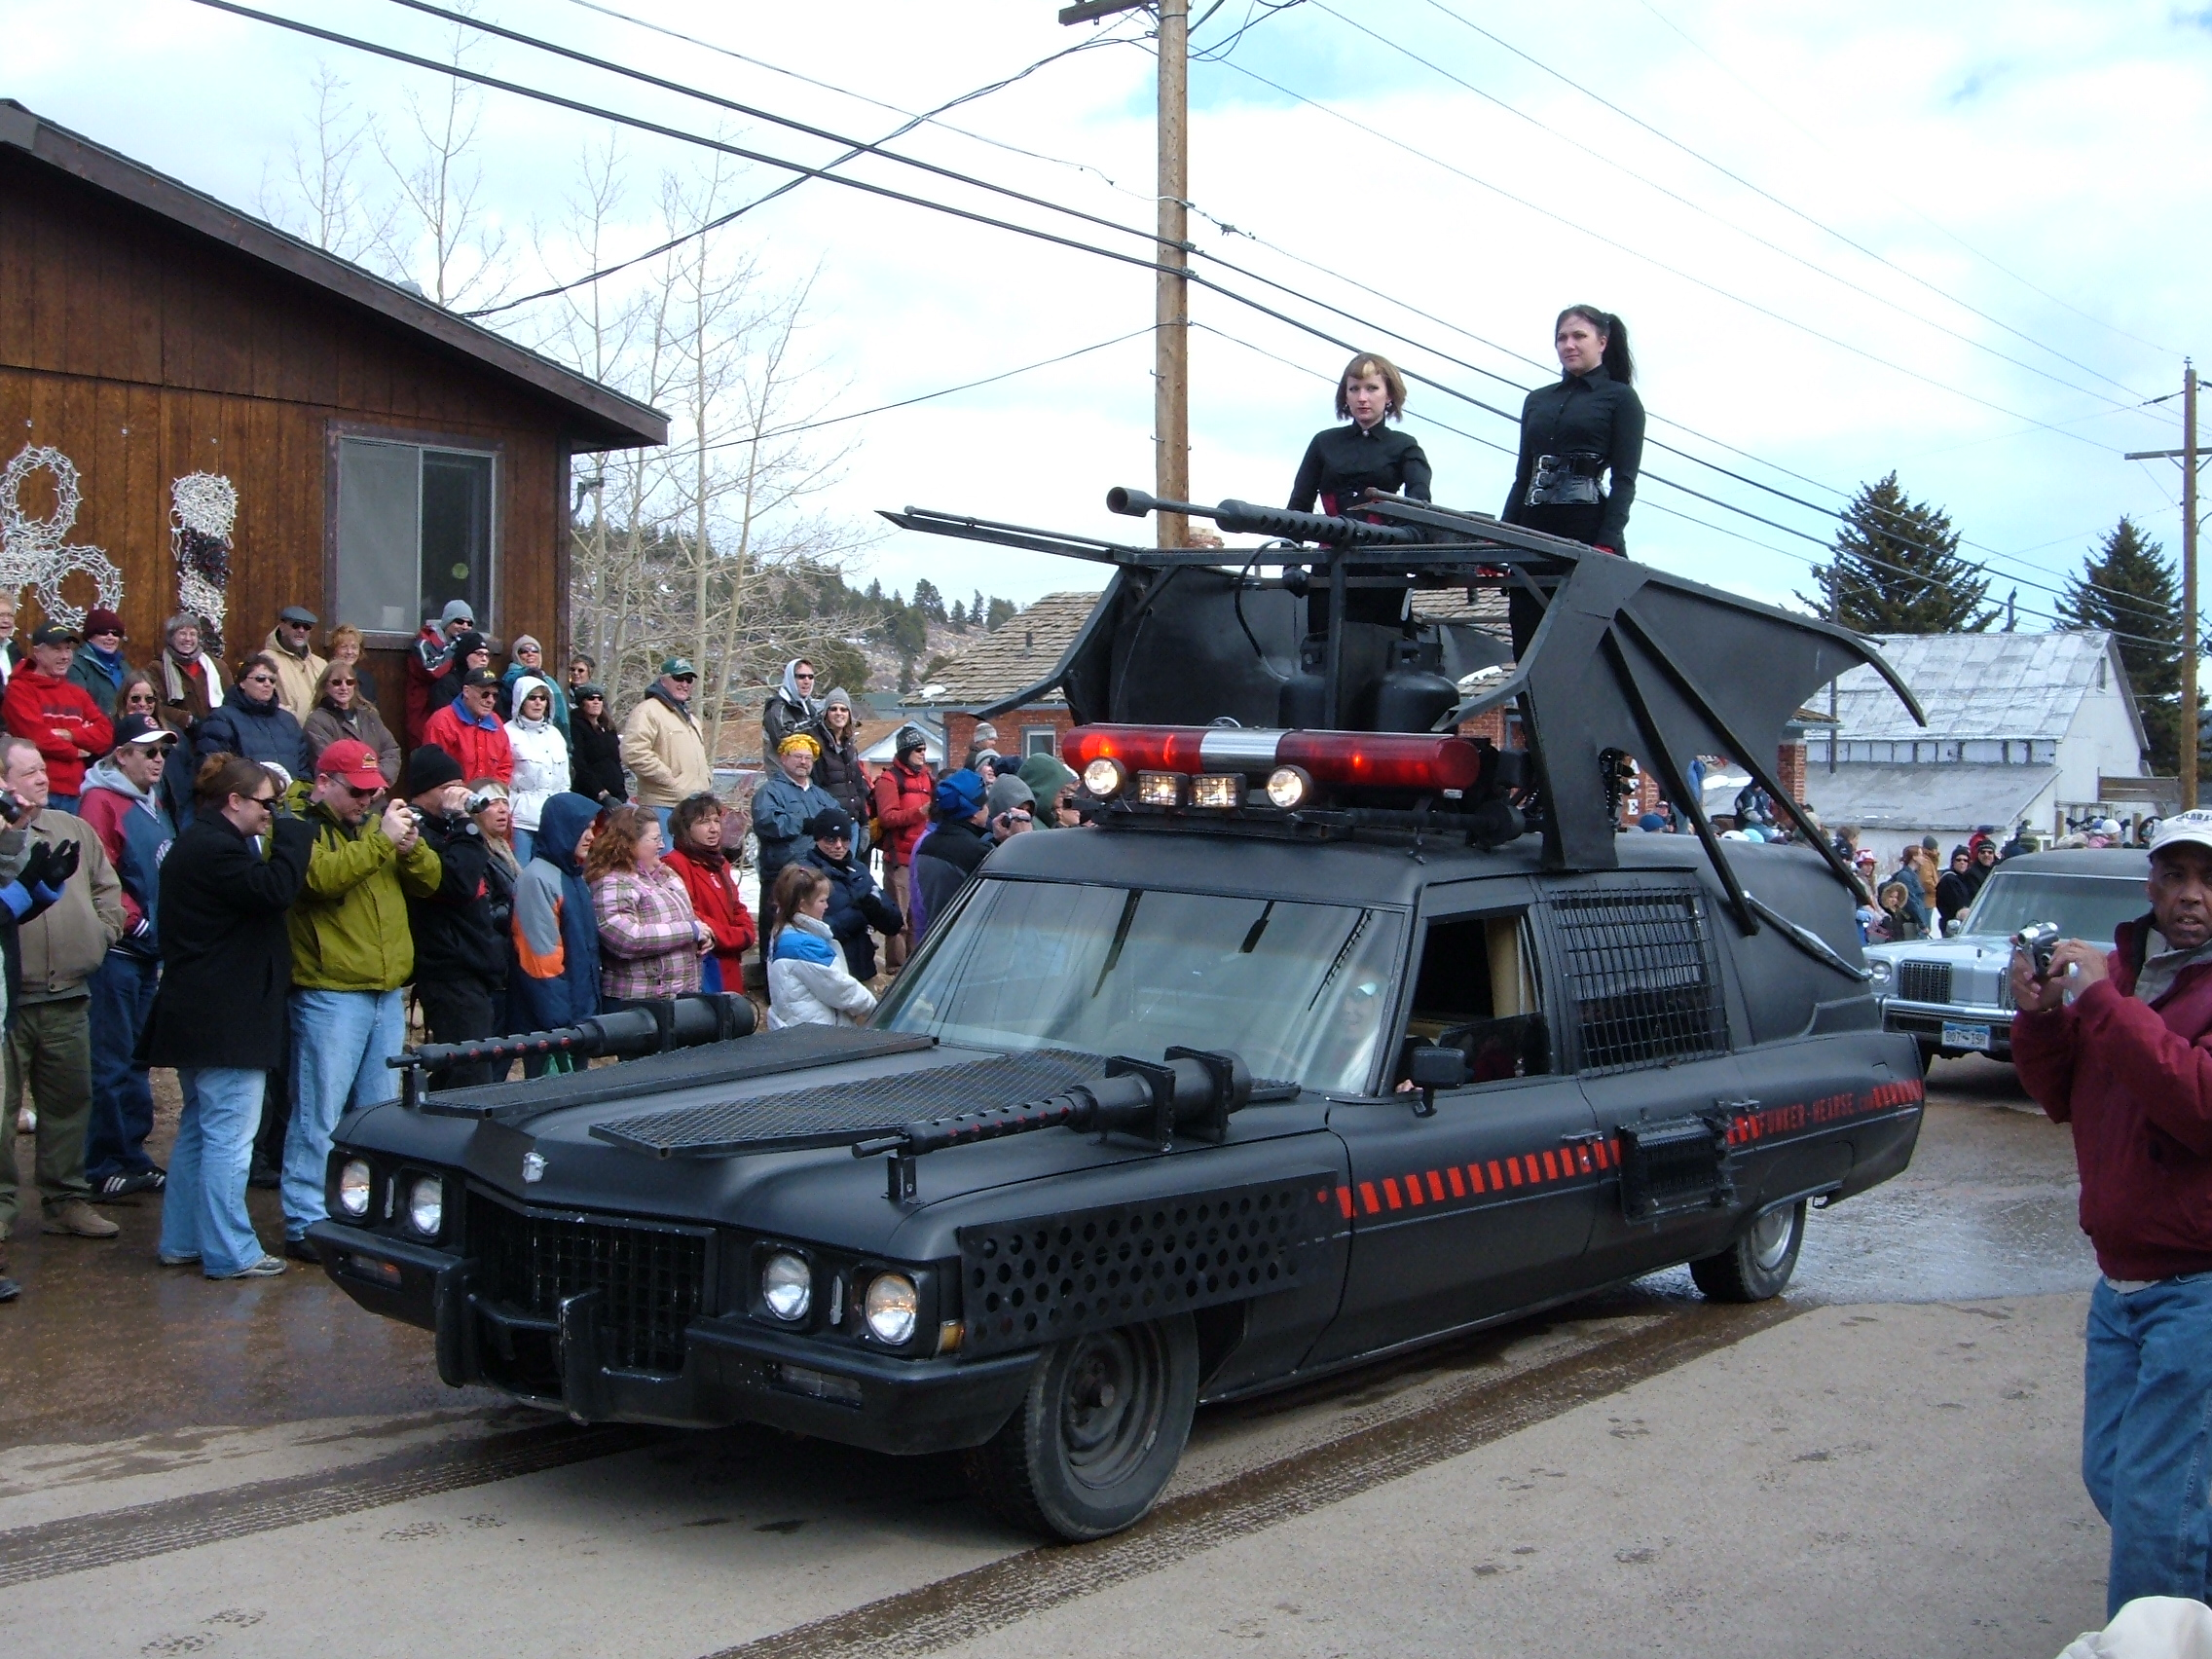 """Photo: Matt Beldyk/Flickr A decorated hearse in the Frozen Dead Guy Days parade of hearses. Other events include coffin races, polar plunge, frozen salmon toss, and a """"frozen dead guy"""" lookalike contest."""